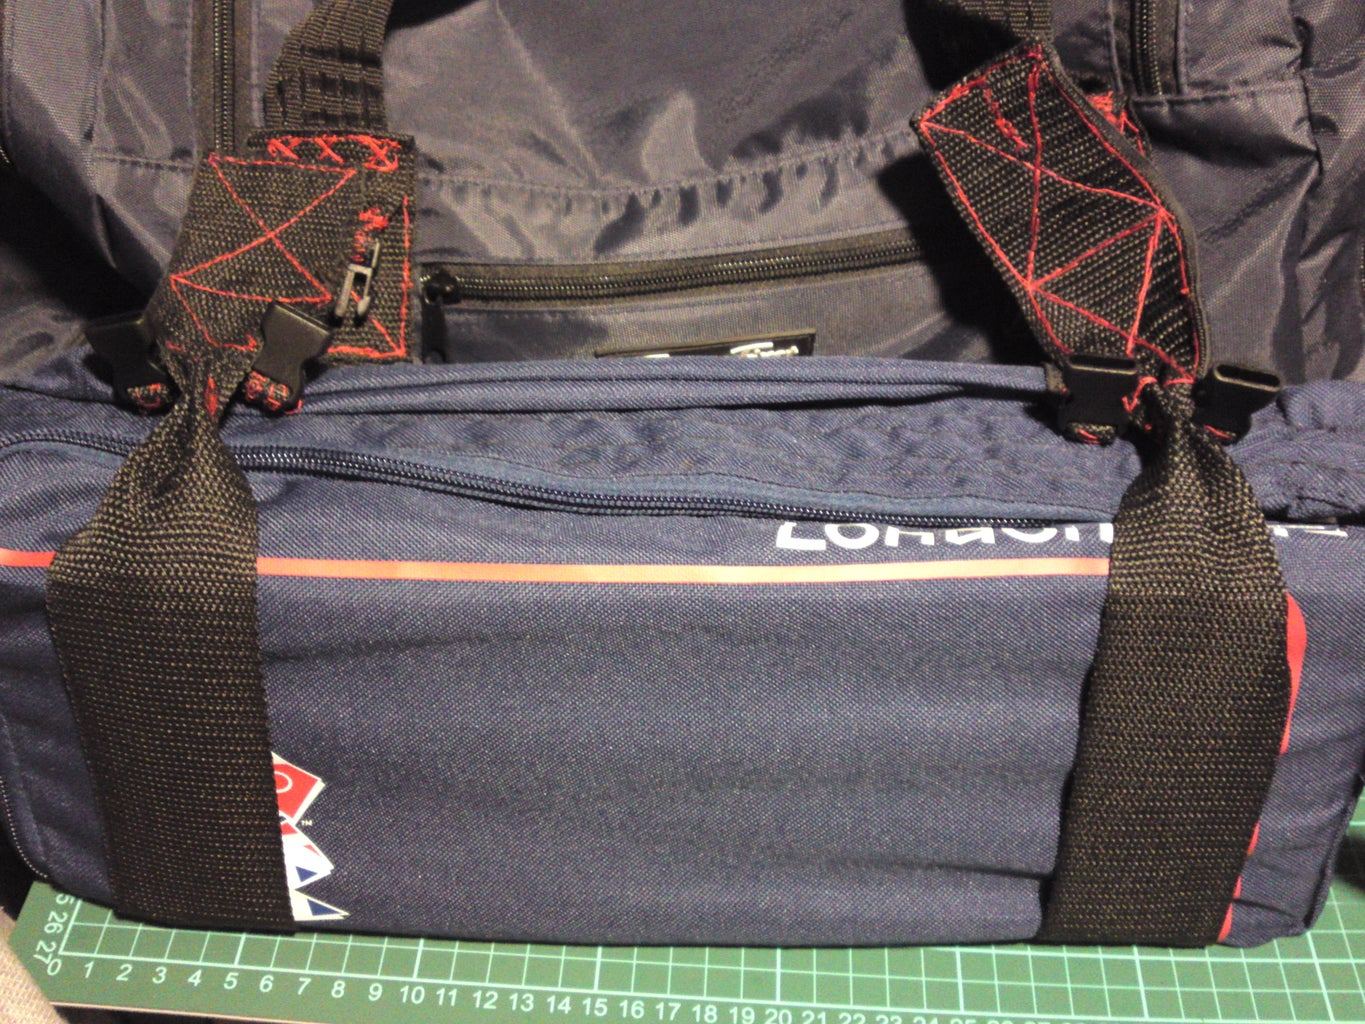 Grab Both Straps Made Earlier With the Velcro Sections Sewn in & the Reinforced Shoe Bag!